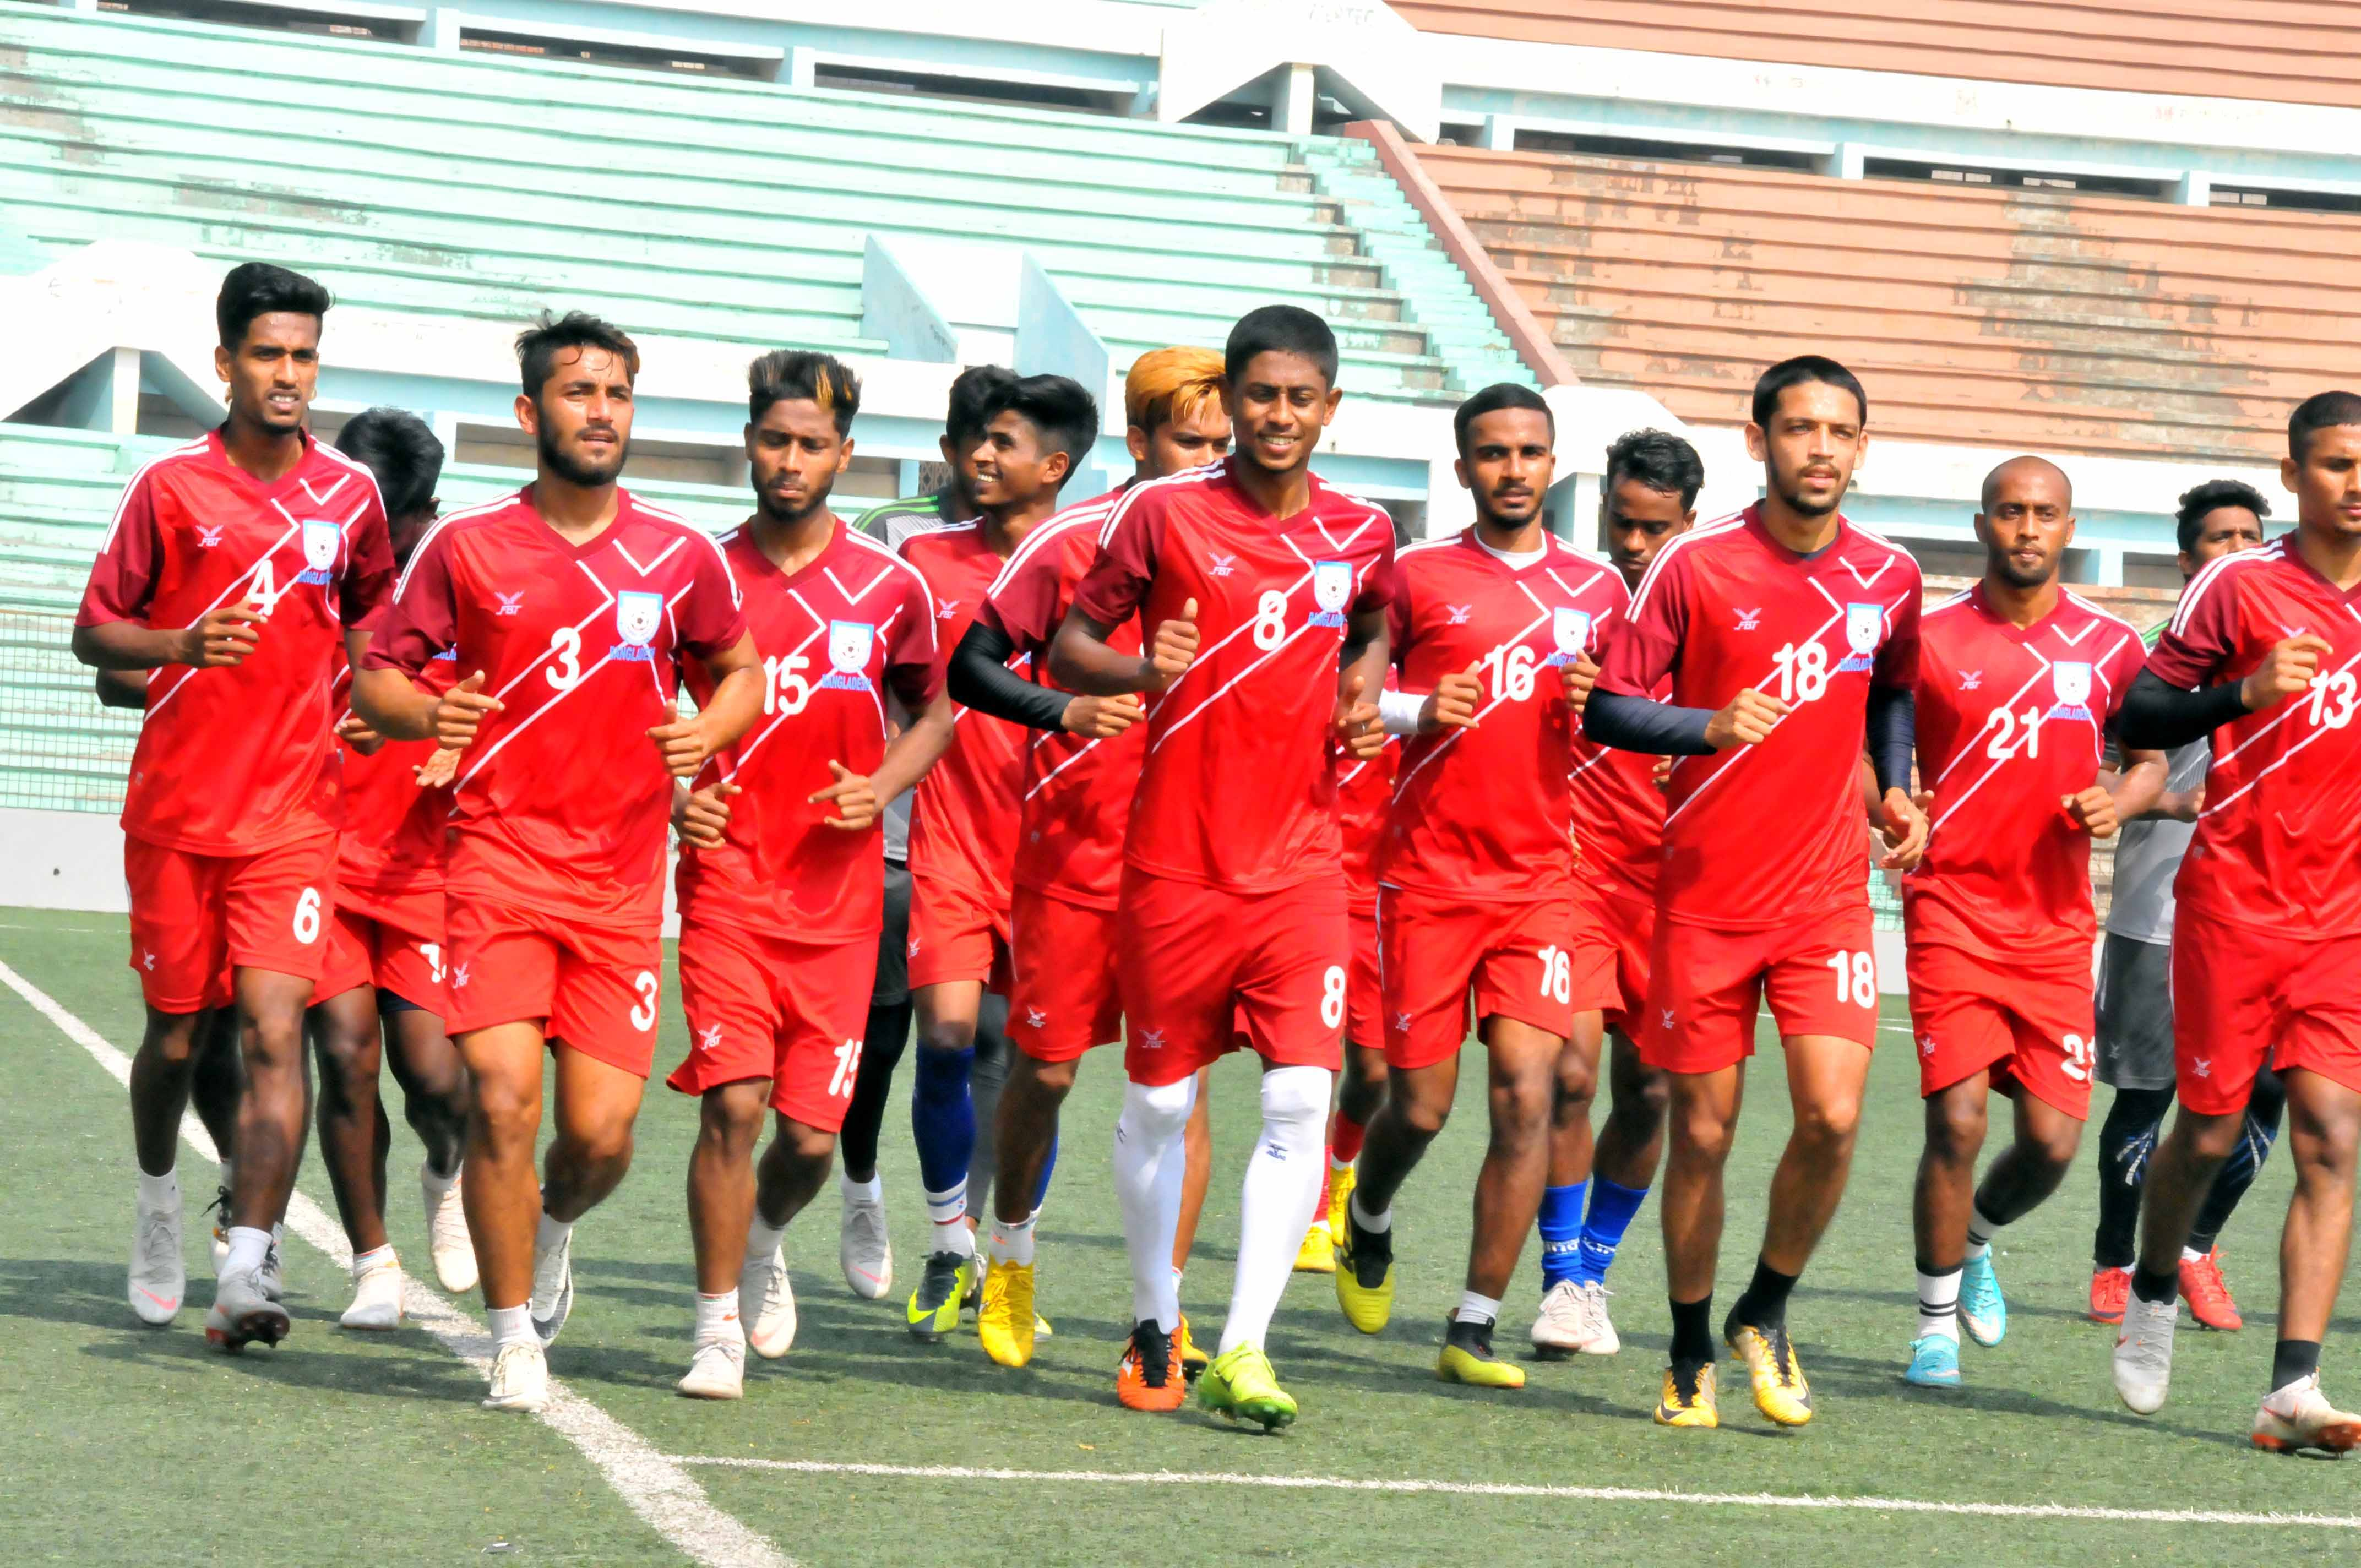 Players of Bangladesh Under-23 Football team during their practice session at the Bir Shreshtha Shaheed Sepoy Mohammad Mostafa Kamal Stadium in the city's Kamalapur on Monday.